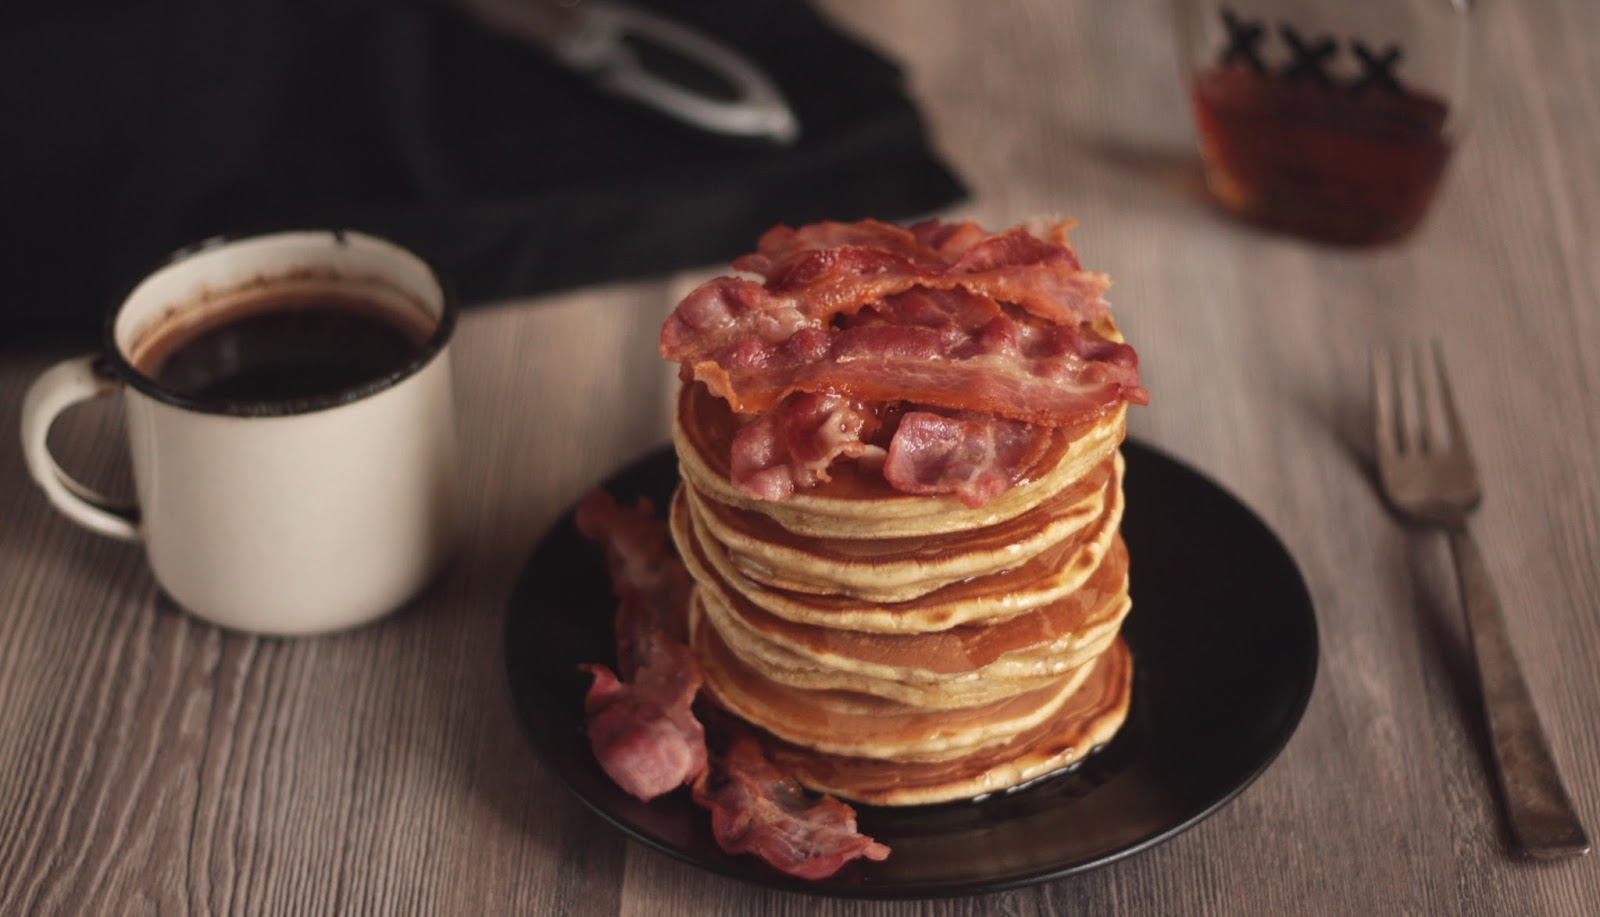 Pancakes for all the beer and bacon lovers out there.